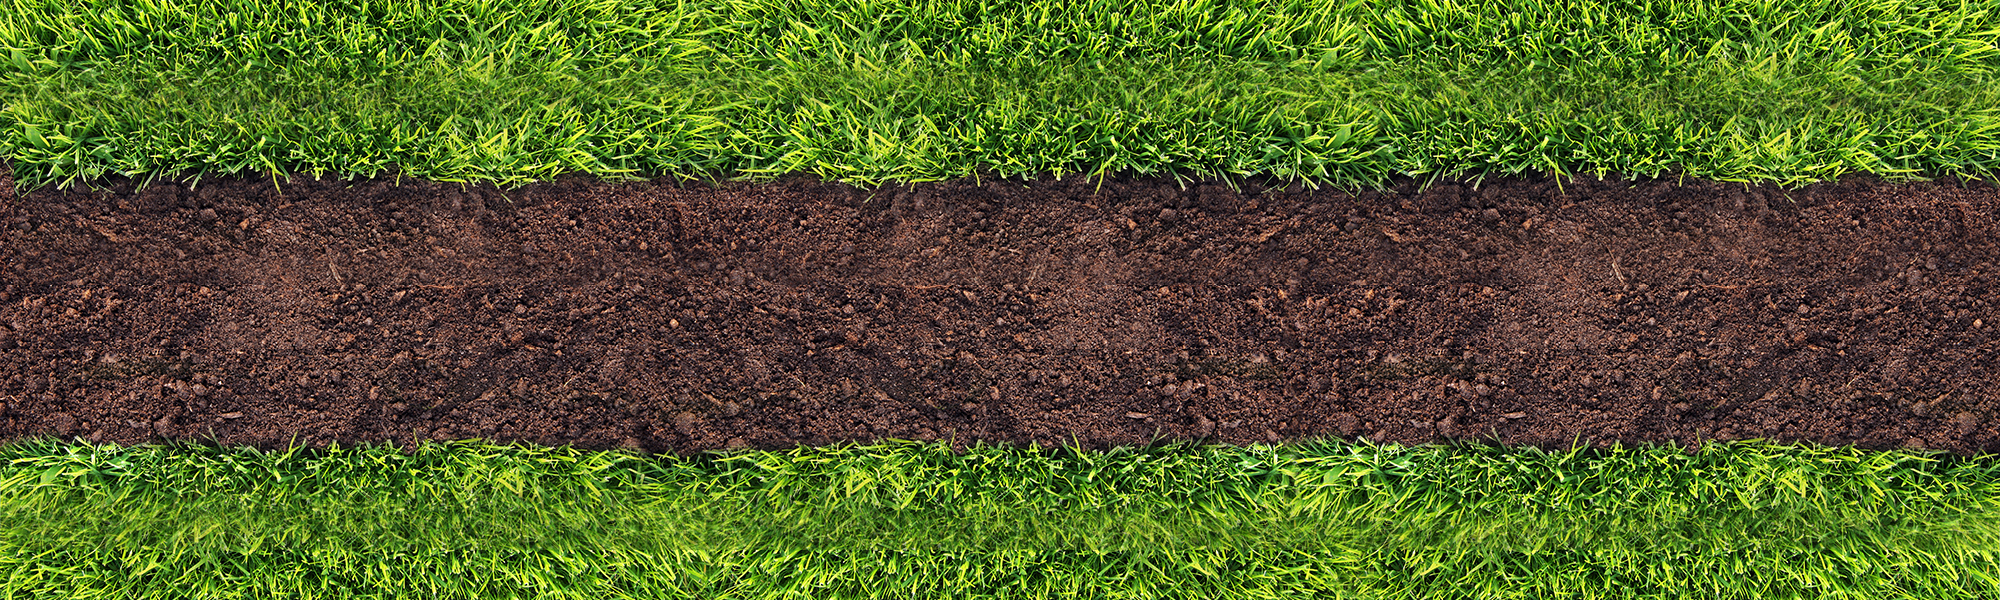 Lawn and soil